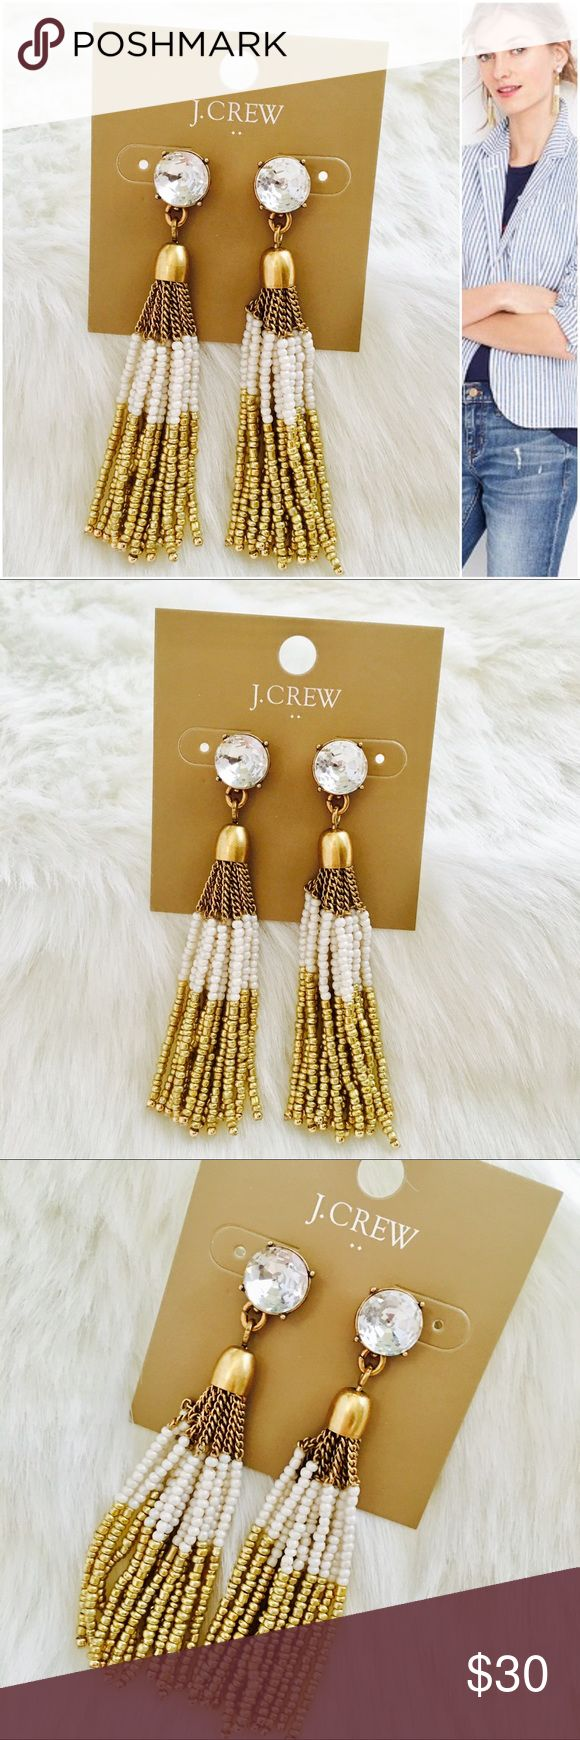 "J. Crew Two-tone Beaded Tassel Earrings Two-tone beaded tassel earrings. On-trend tassels. Get these now for, open house / wedding season or just because!  * Zinc casting, glass stone, glass seedbead. * Light gold ox plating. * Length: 3"". J. Crew Jewelry Earrings"